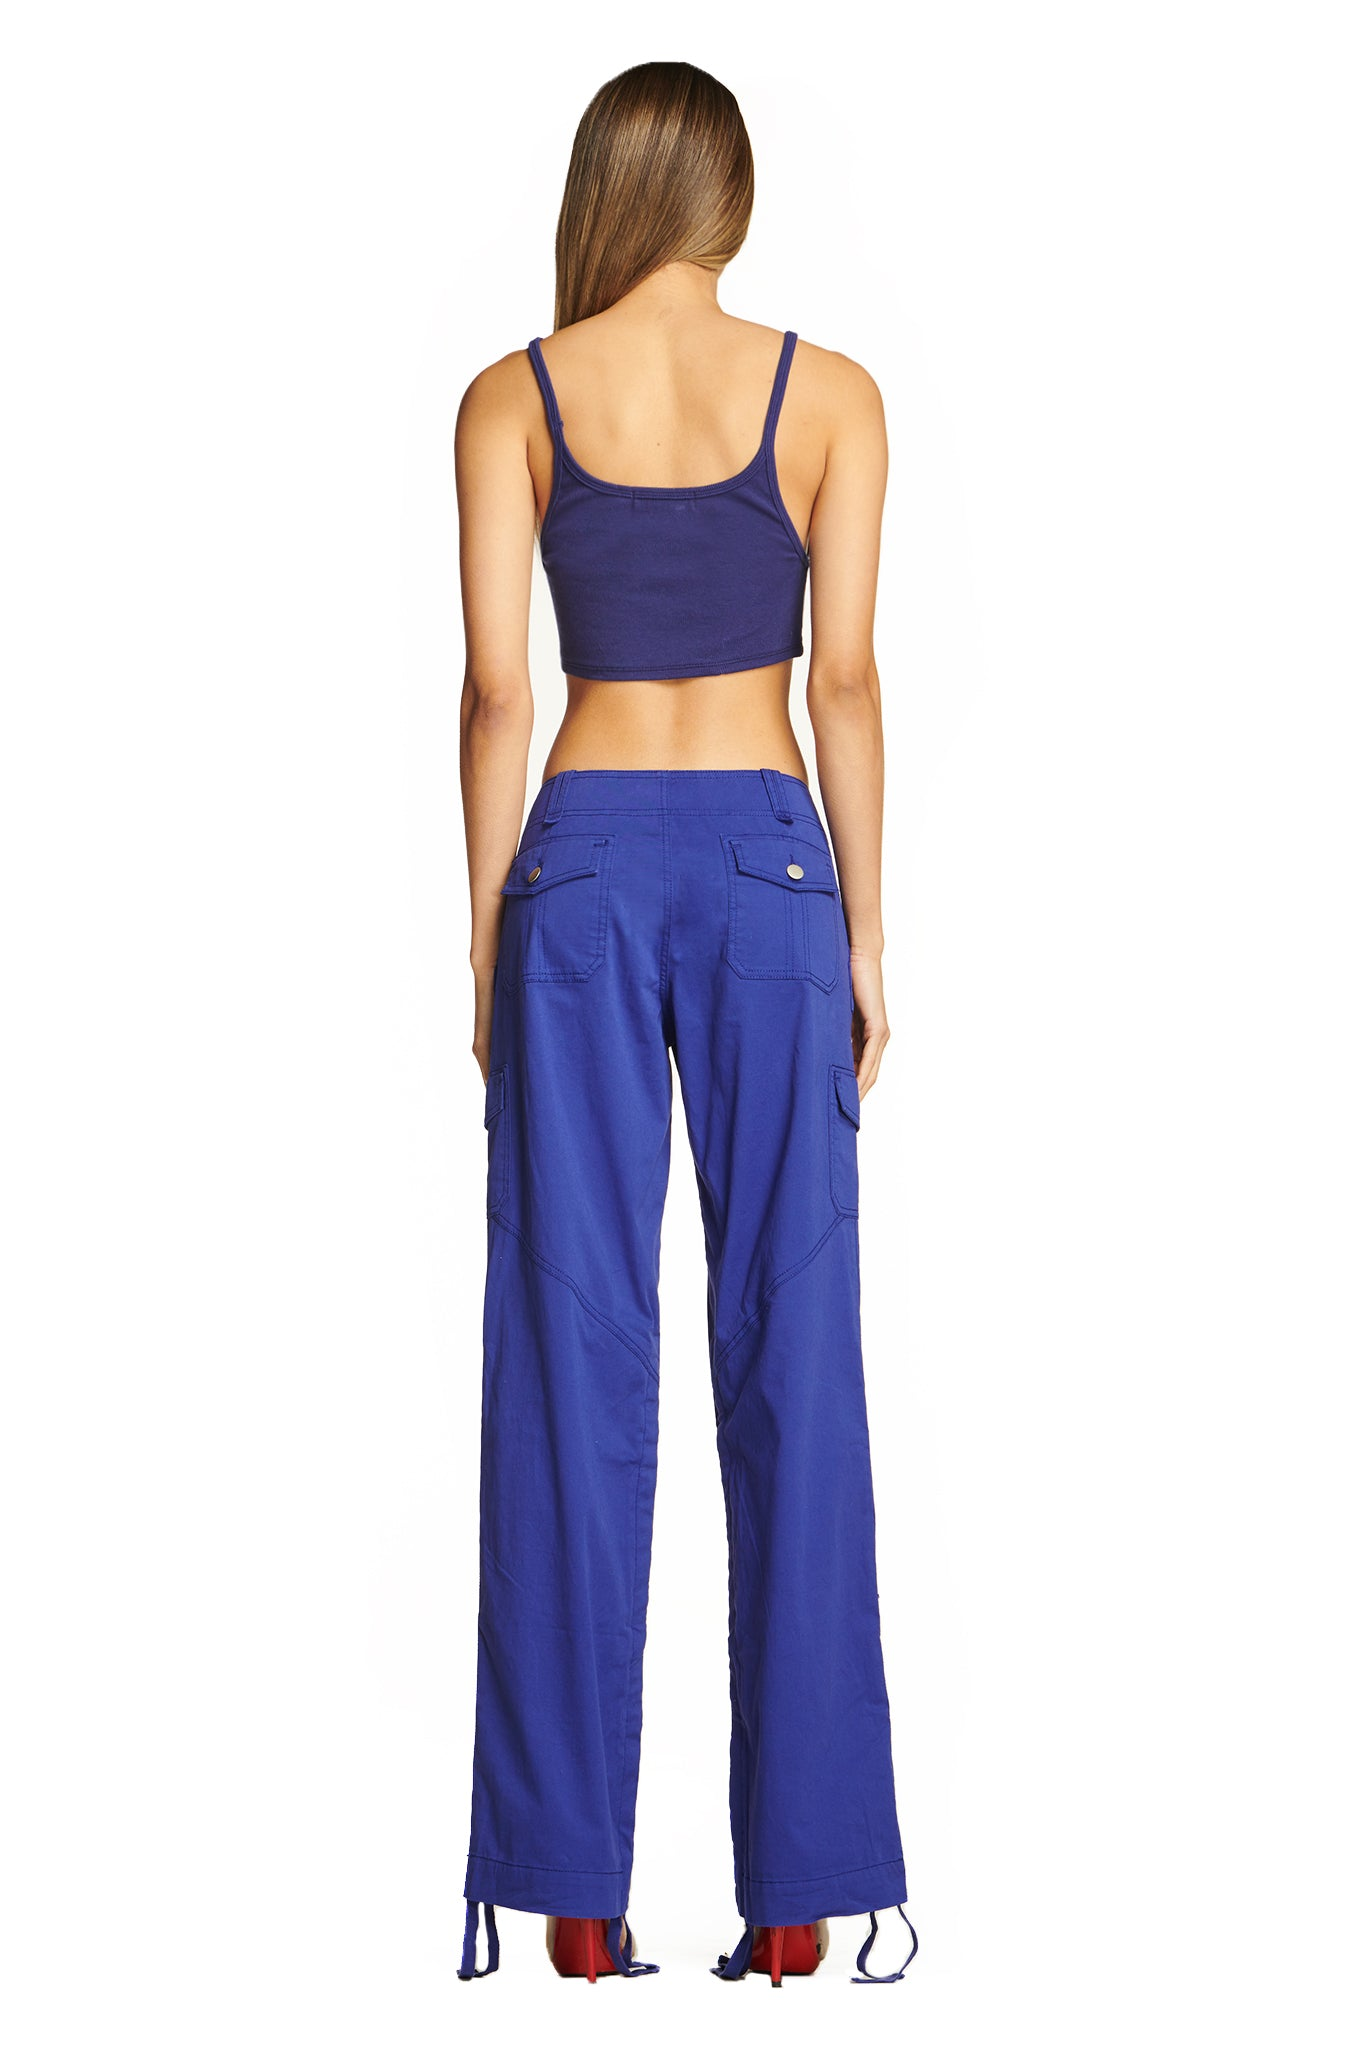 ELIA CROP SINGLET - DEEP BLUE